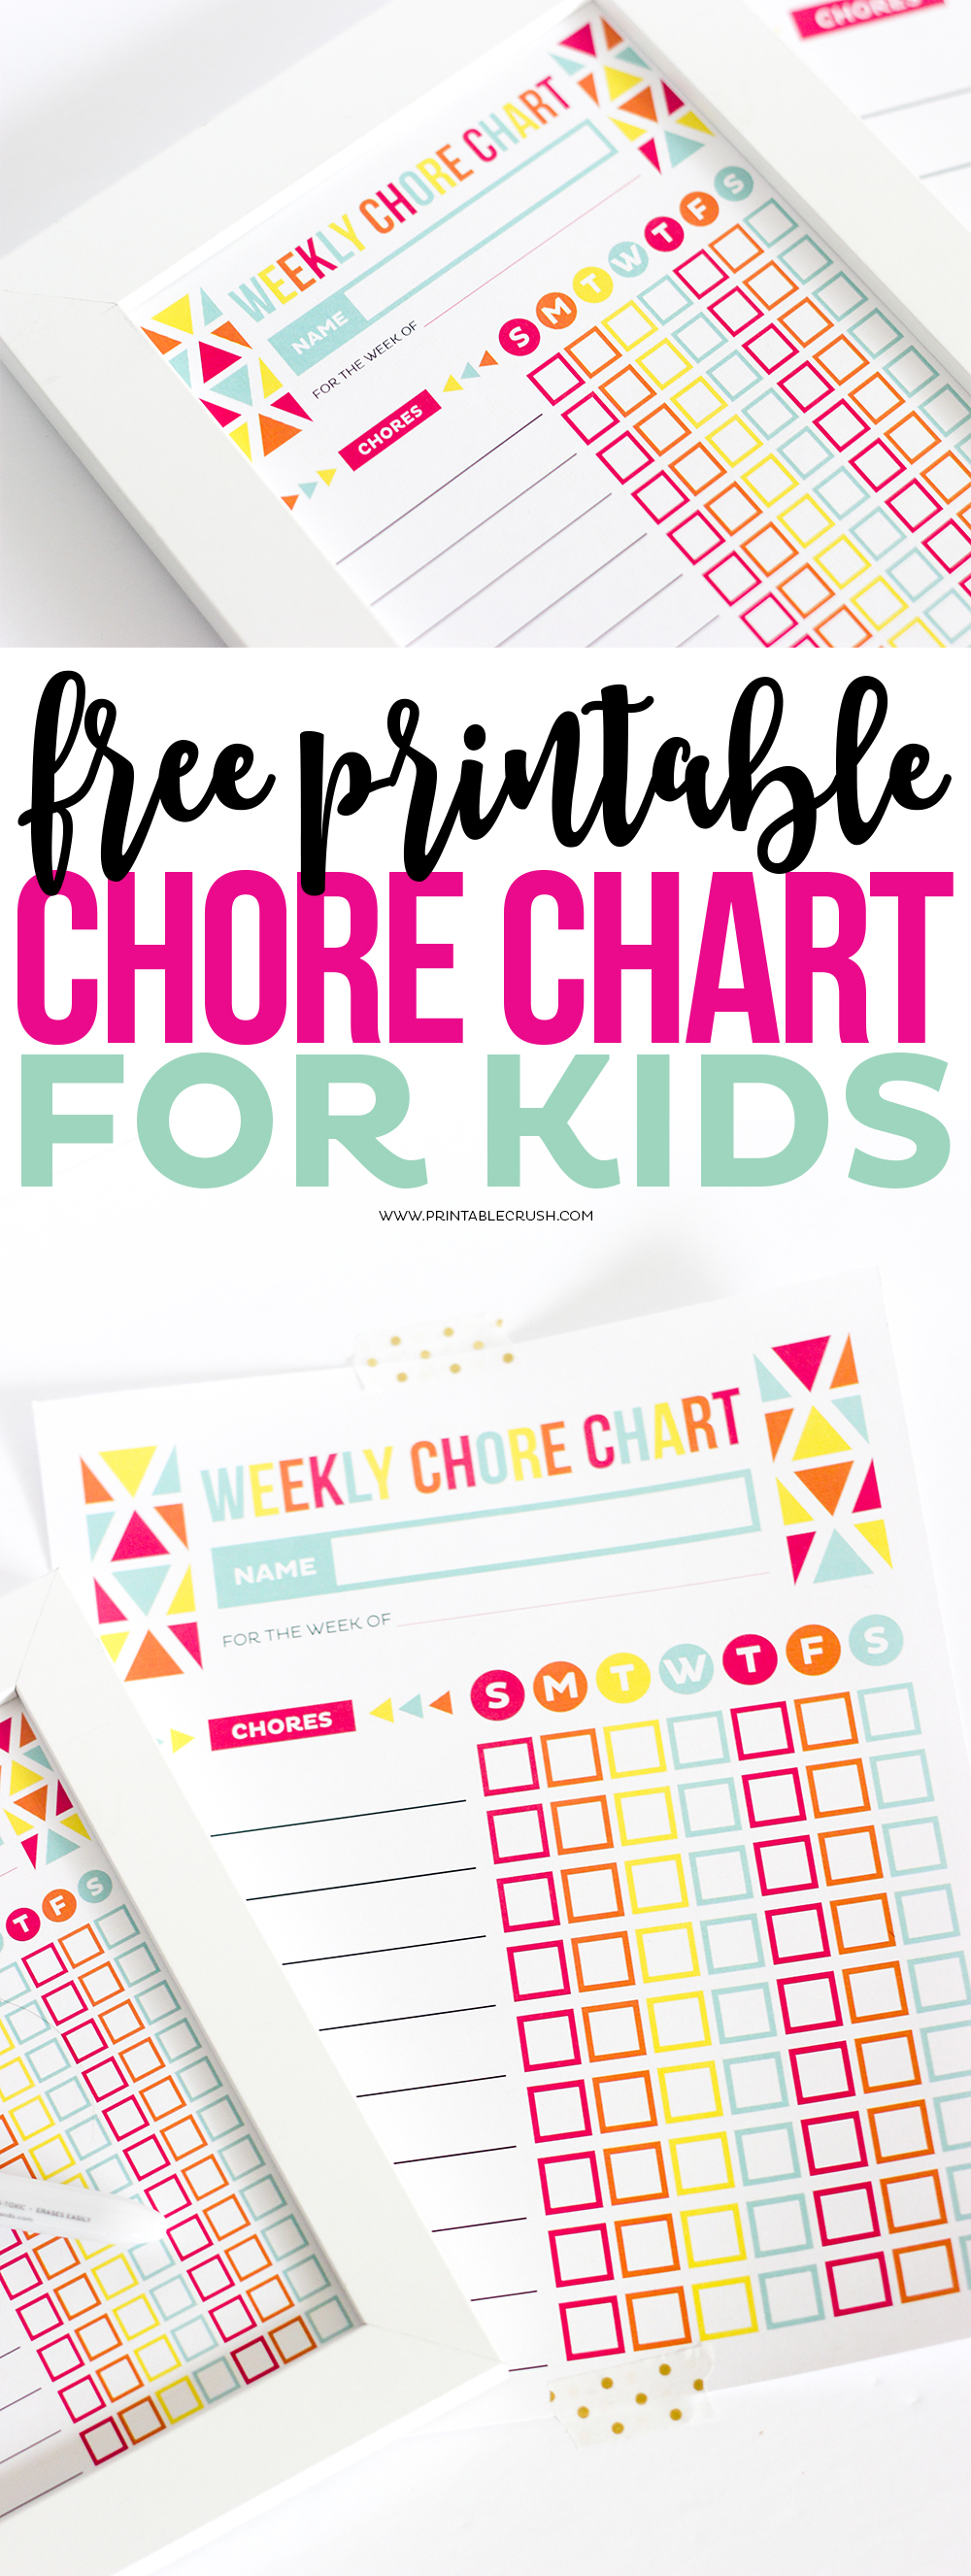 picture about Free Printable Chore Charts for Kids named Chore Charts For Youngsters - Hold Young children Upon Observe Employing My Free of charge